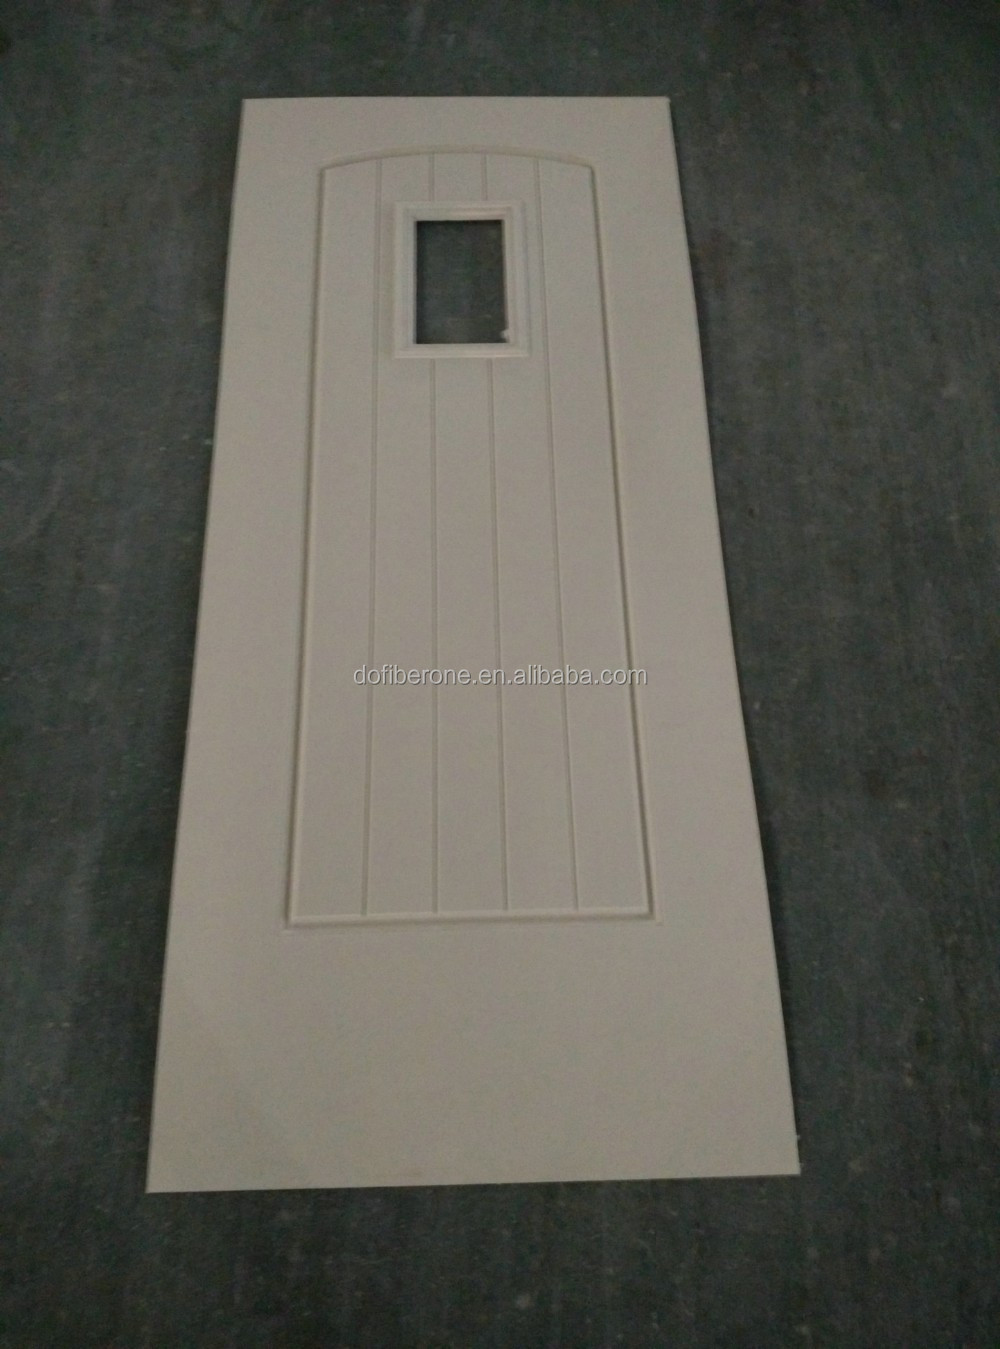 with glass frame molded in GRP FRP glassfiber fiberglass SMC glazing door and door skin